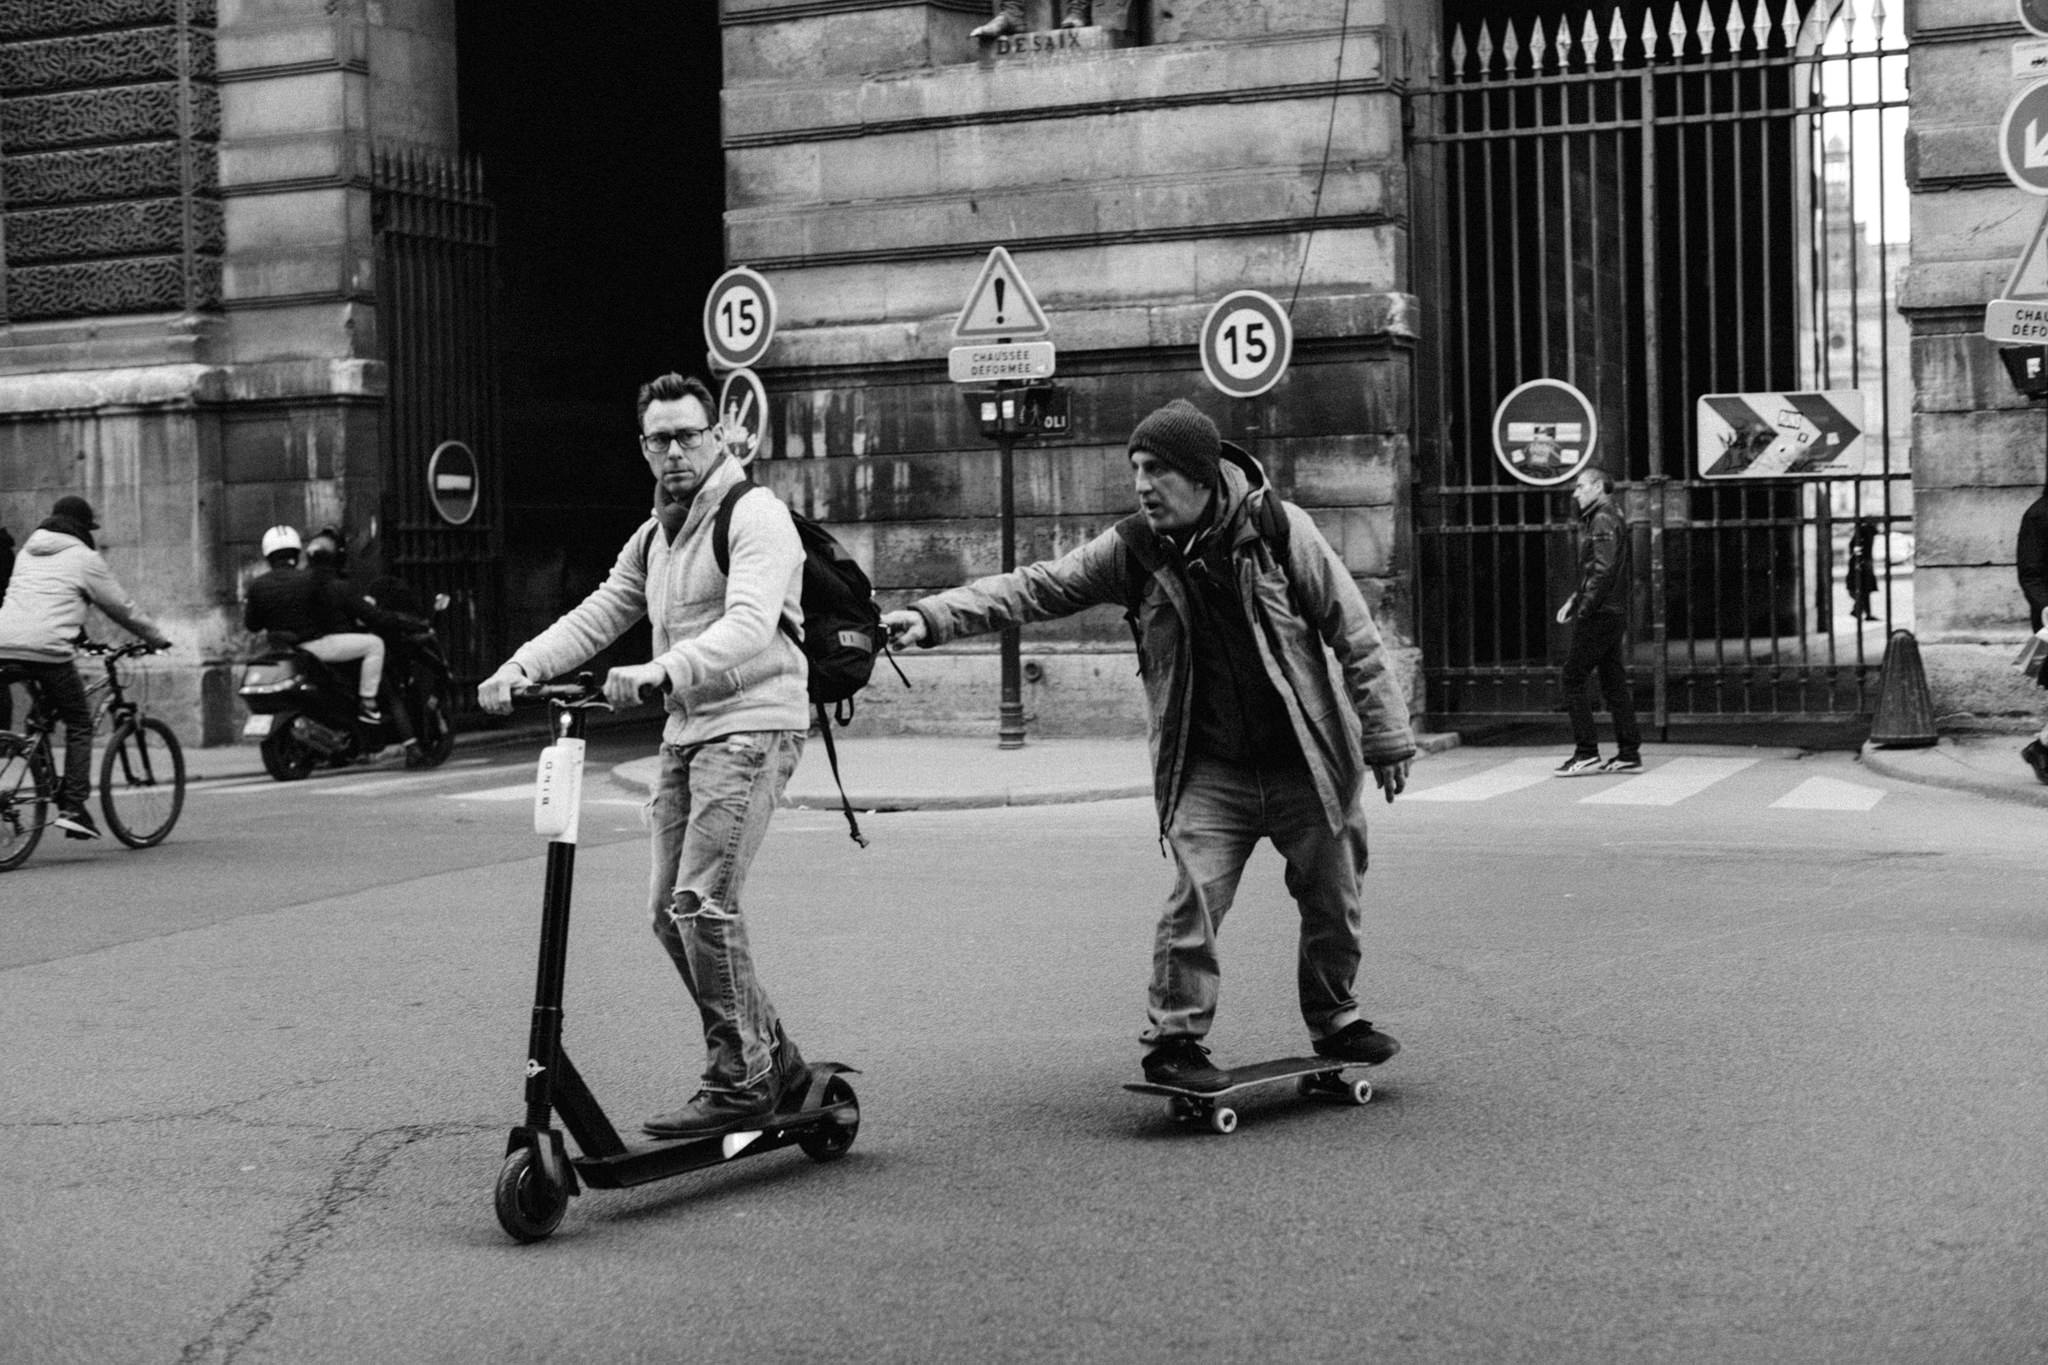 Guy on skateboard pulled by step scooter in Paris, France